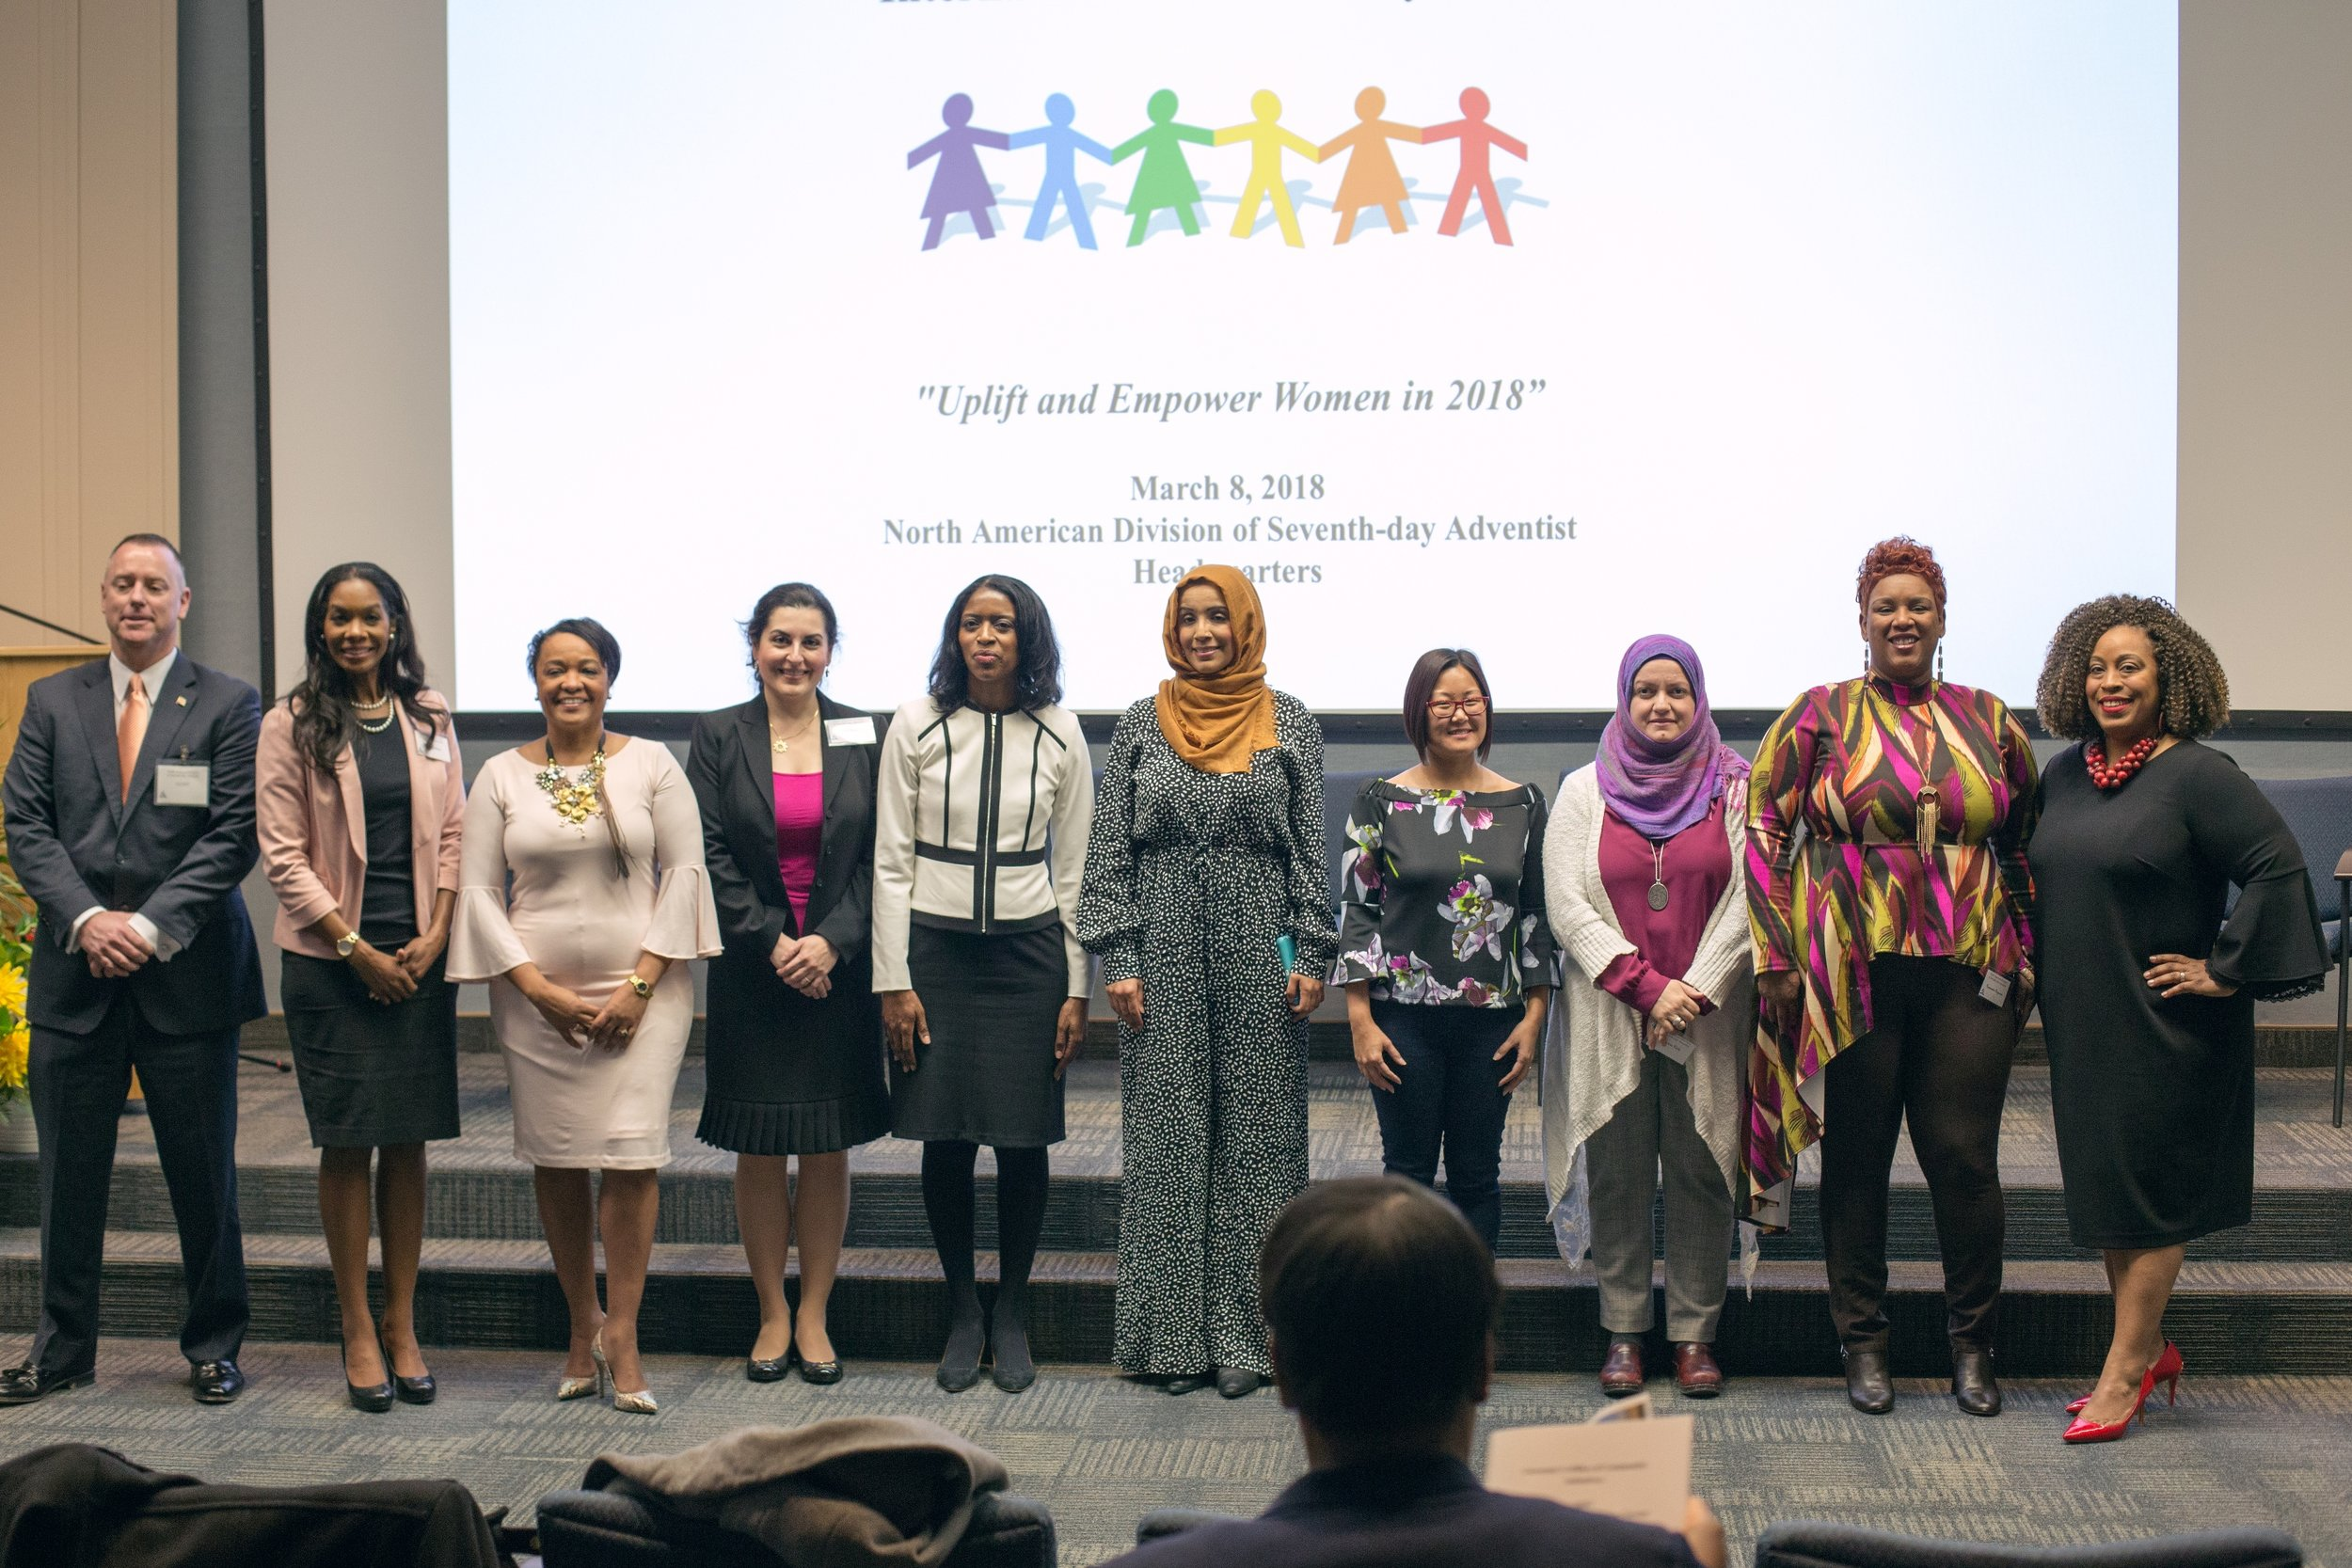 Female presenters and participants of the International Women's Day Forum. Photo by Pieter Damsteegt